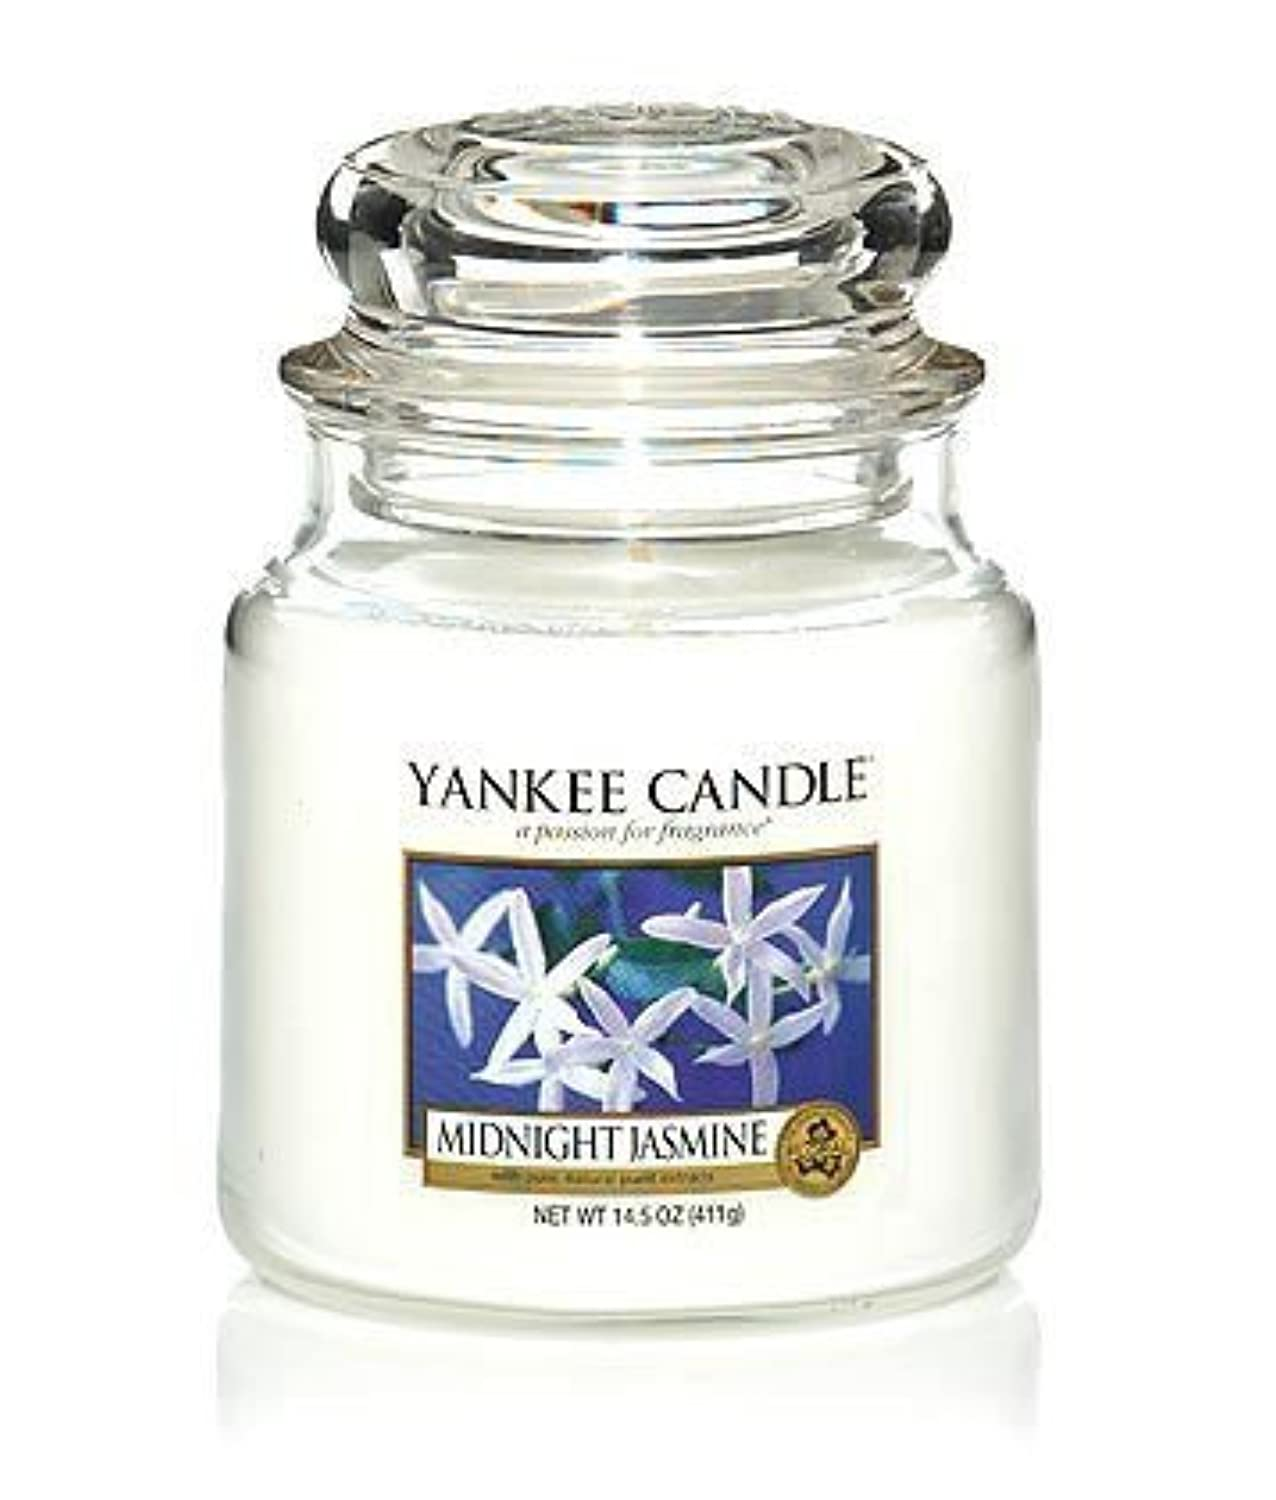 Yankee Candle Midnight Jasmine Medium Jar Candle, Floral Scent by Yankee Candle [並行輸入品]